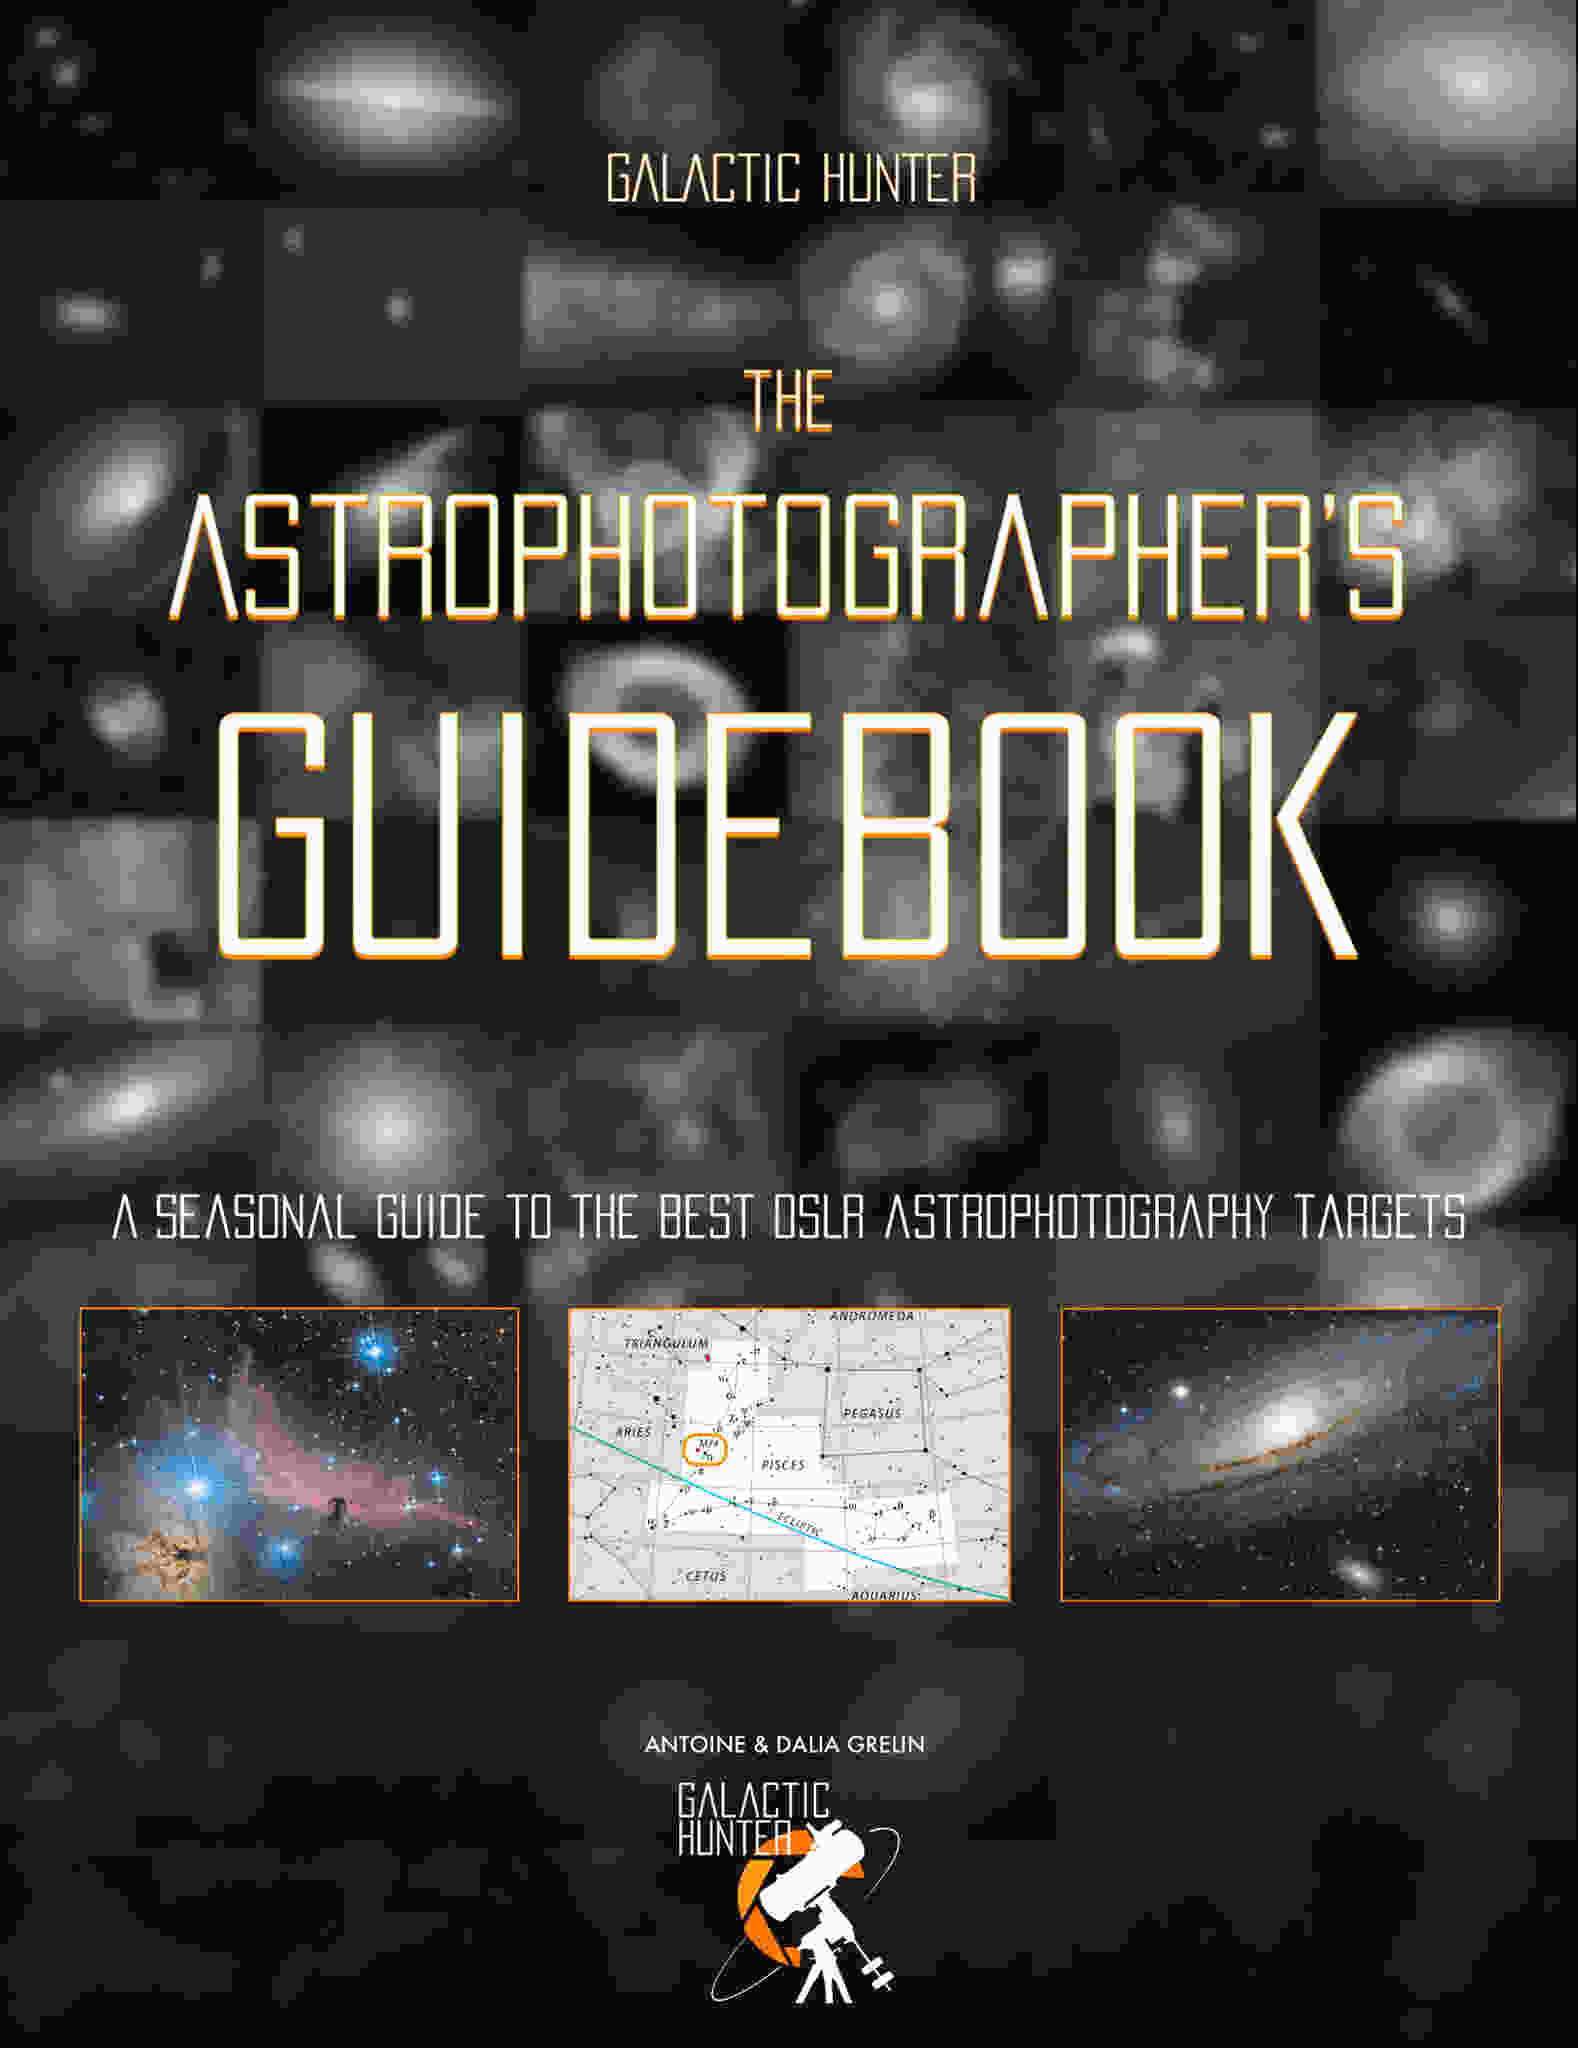 The Astrophotographer's Guidebook